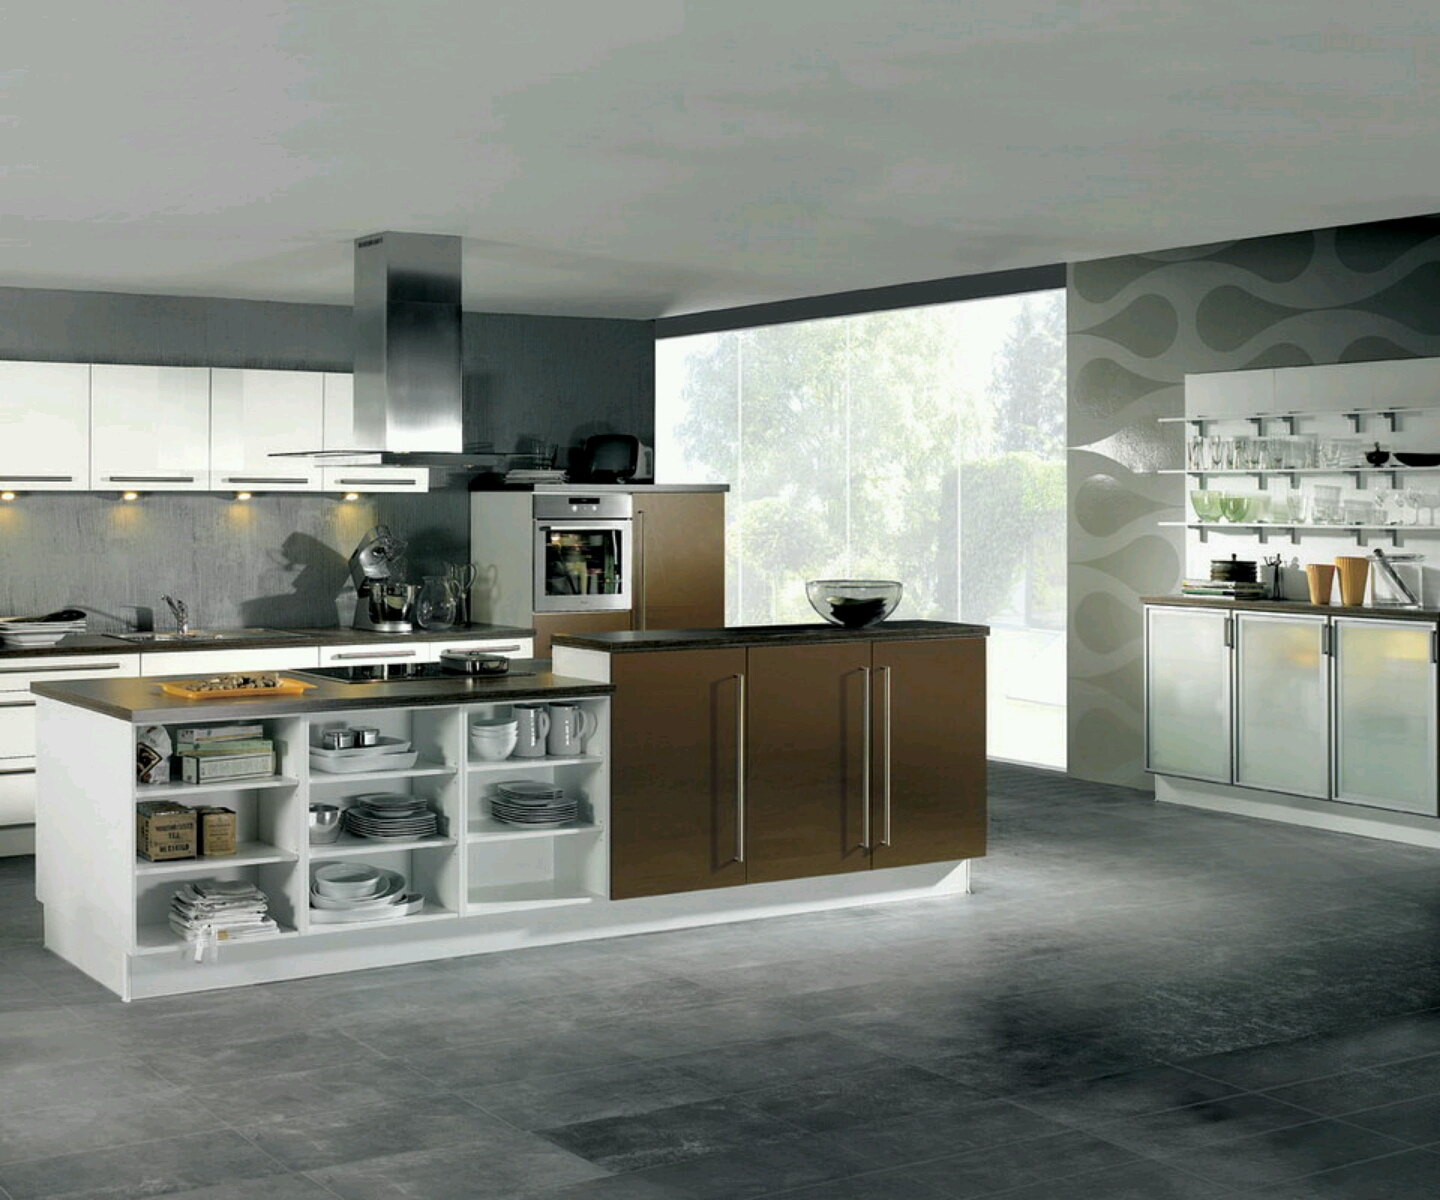 New home designs latest ultra modern kitchen designs ideas for Kitchen design ideas modern